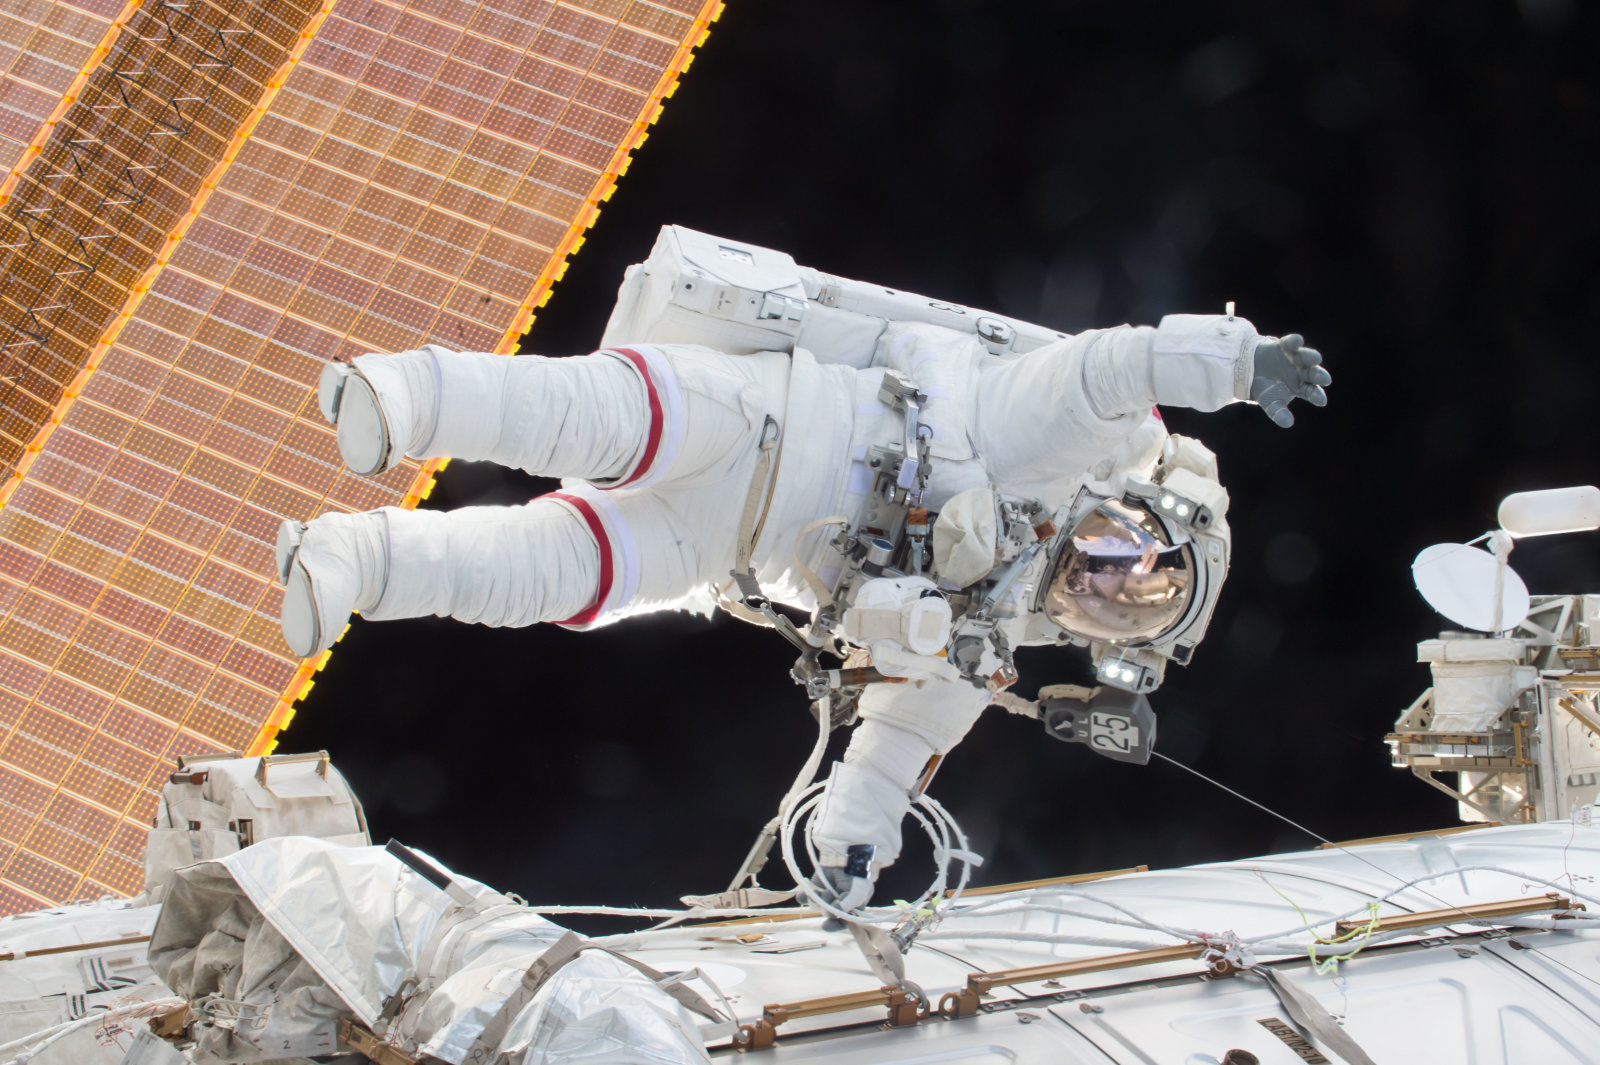 IN SPACE - DECEMBER 21:  In this handout photo provided by NASA, NASA astronaut Scott Kelly is seen floating during a spacewalk on December 21, 2015 in space. NASA astronauts Scott Kelly and Tim Kopra released brake handles on crew equipment carts on either side of the space stations mobile transporter rail car so it could be latched in place ahead of Wednesdays docking of a Russian cargo resupply spacecraft. Kelly and Kopra also tackled several get-ahead tasks during their three hour, 16 minute spacewalk. (Photo by NASA via Getty Images)